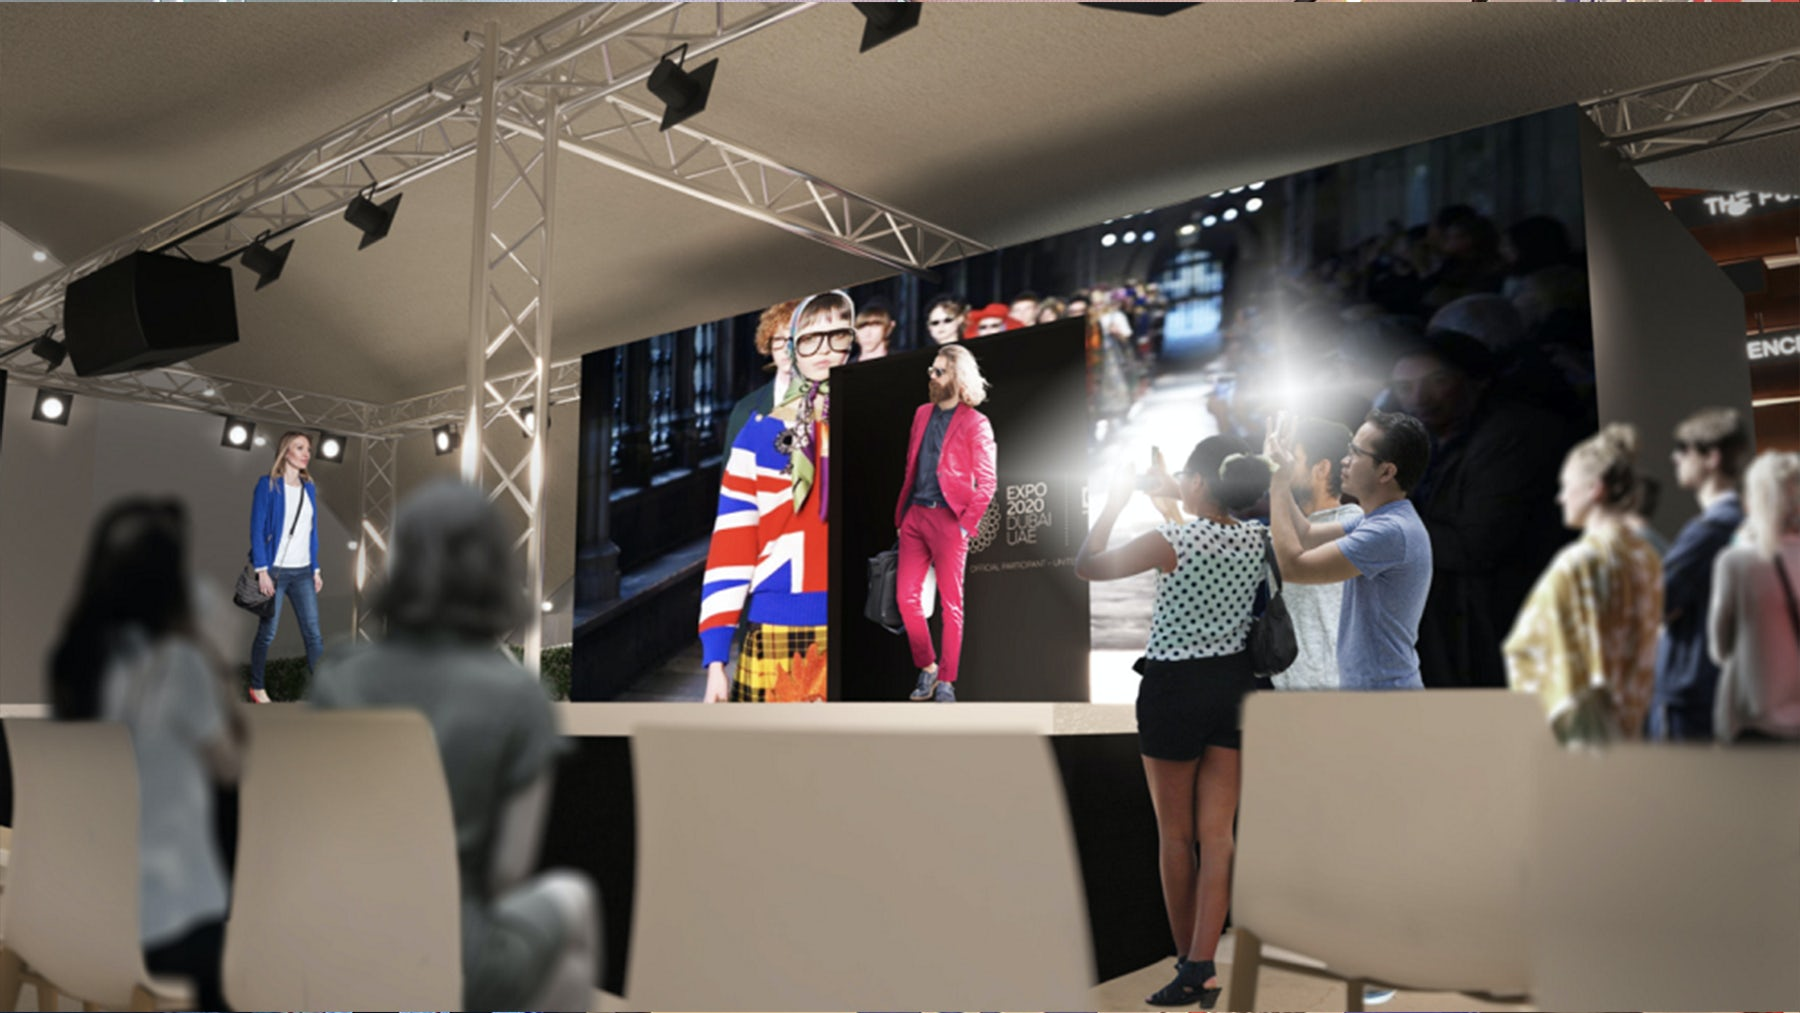 The British Fashion Council will be holding a fashion show and sustainability summit in the UK Pavilion at Expo 2020 Dubai. UK at Expo, Department for International Trade.